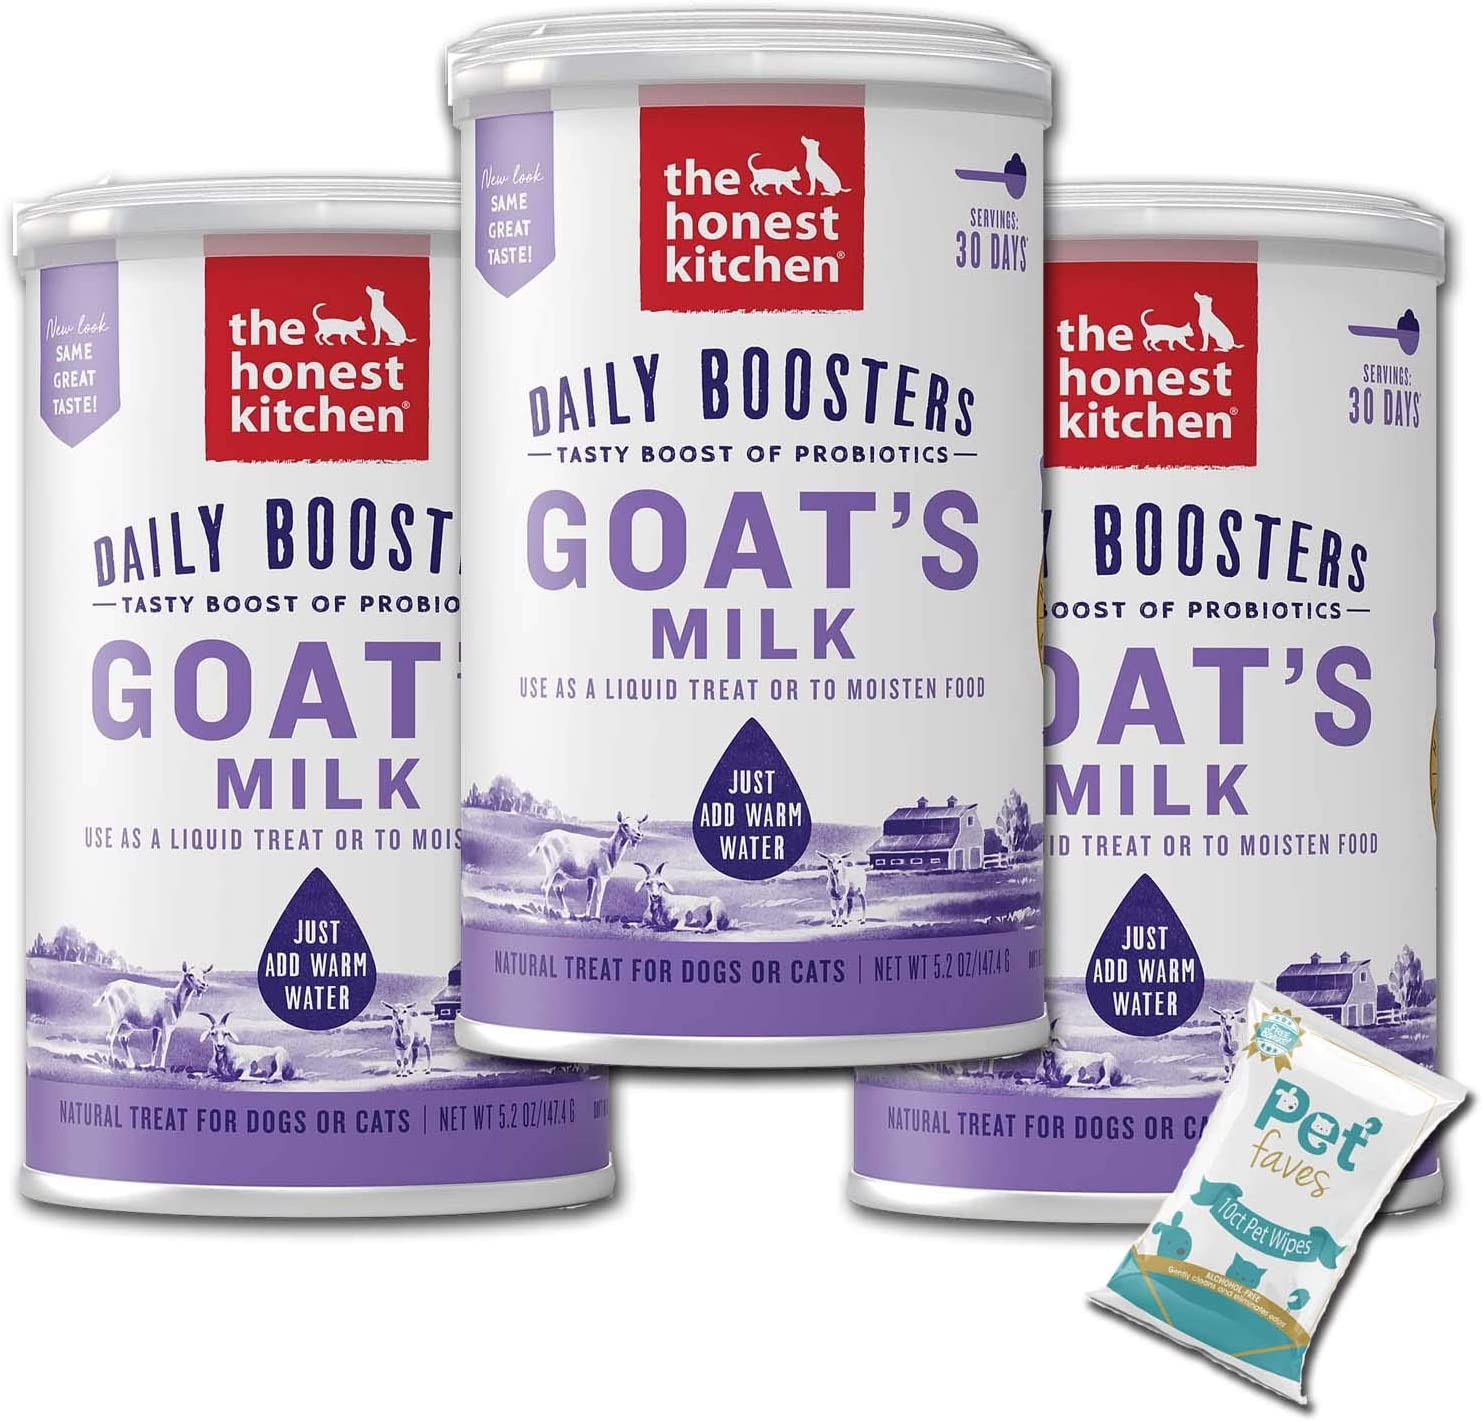 (3 Pack) The Honest Kitchen Probiotic Goat's Milk, Beef Bone Broth and Herbal Digestive Supplement Pet Food for Cats and Dog with 10ct Pet Faves Wipes (Probiotic Goat's Milk)